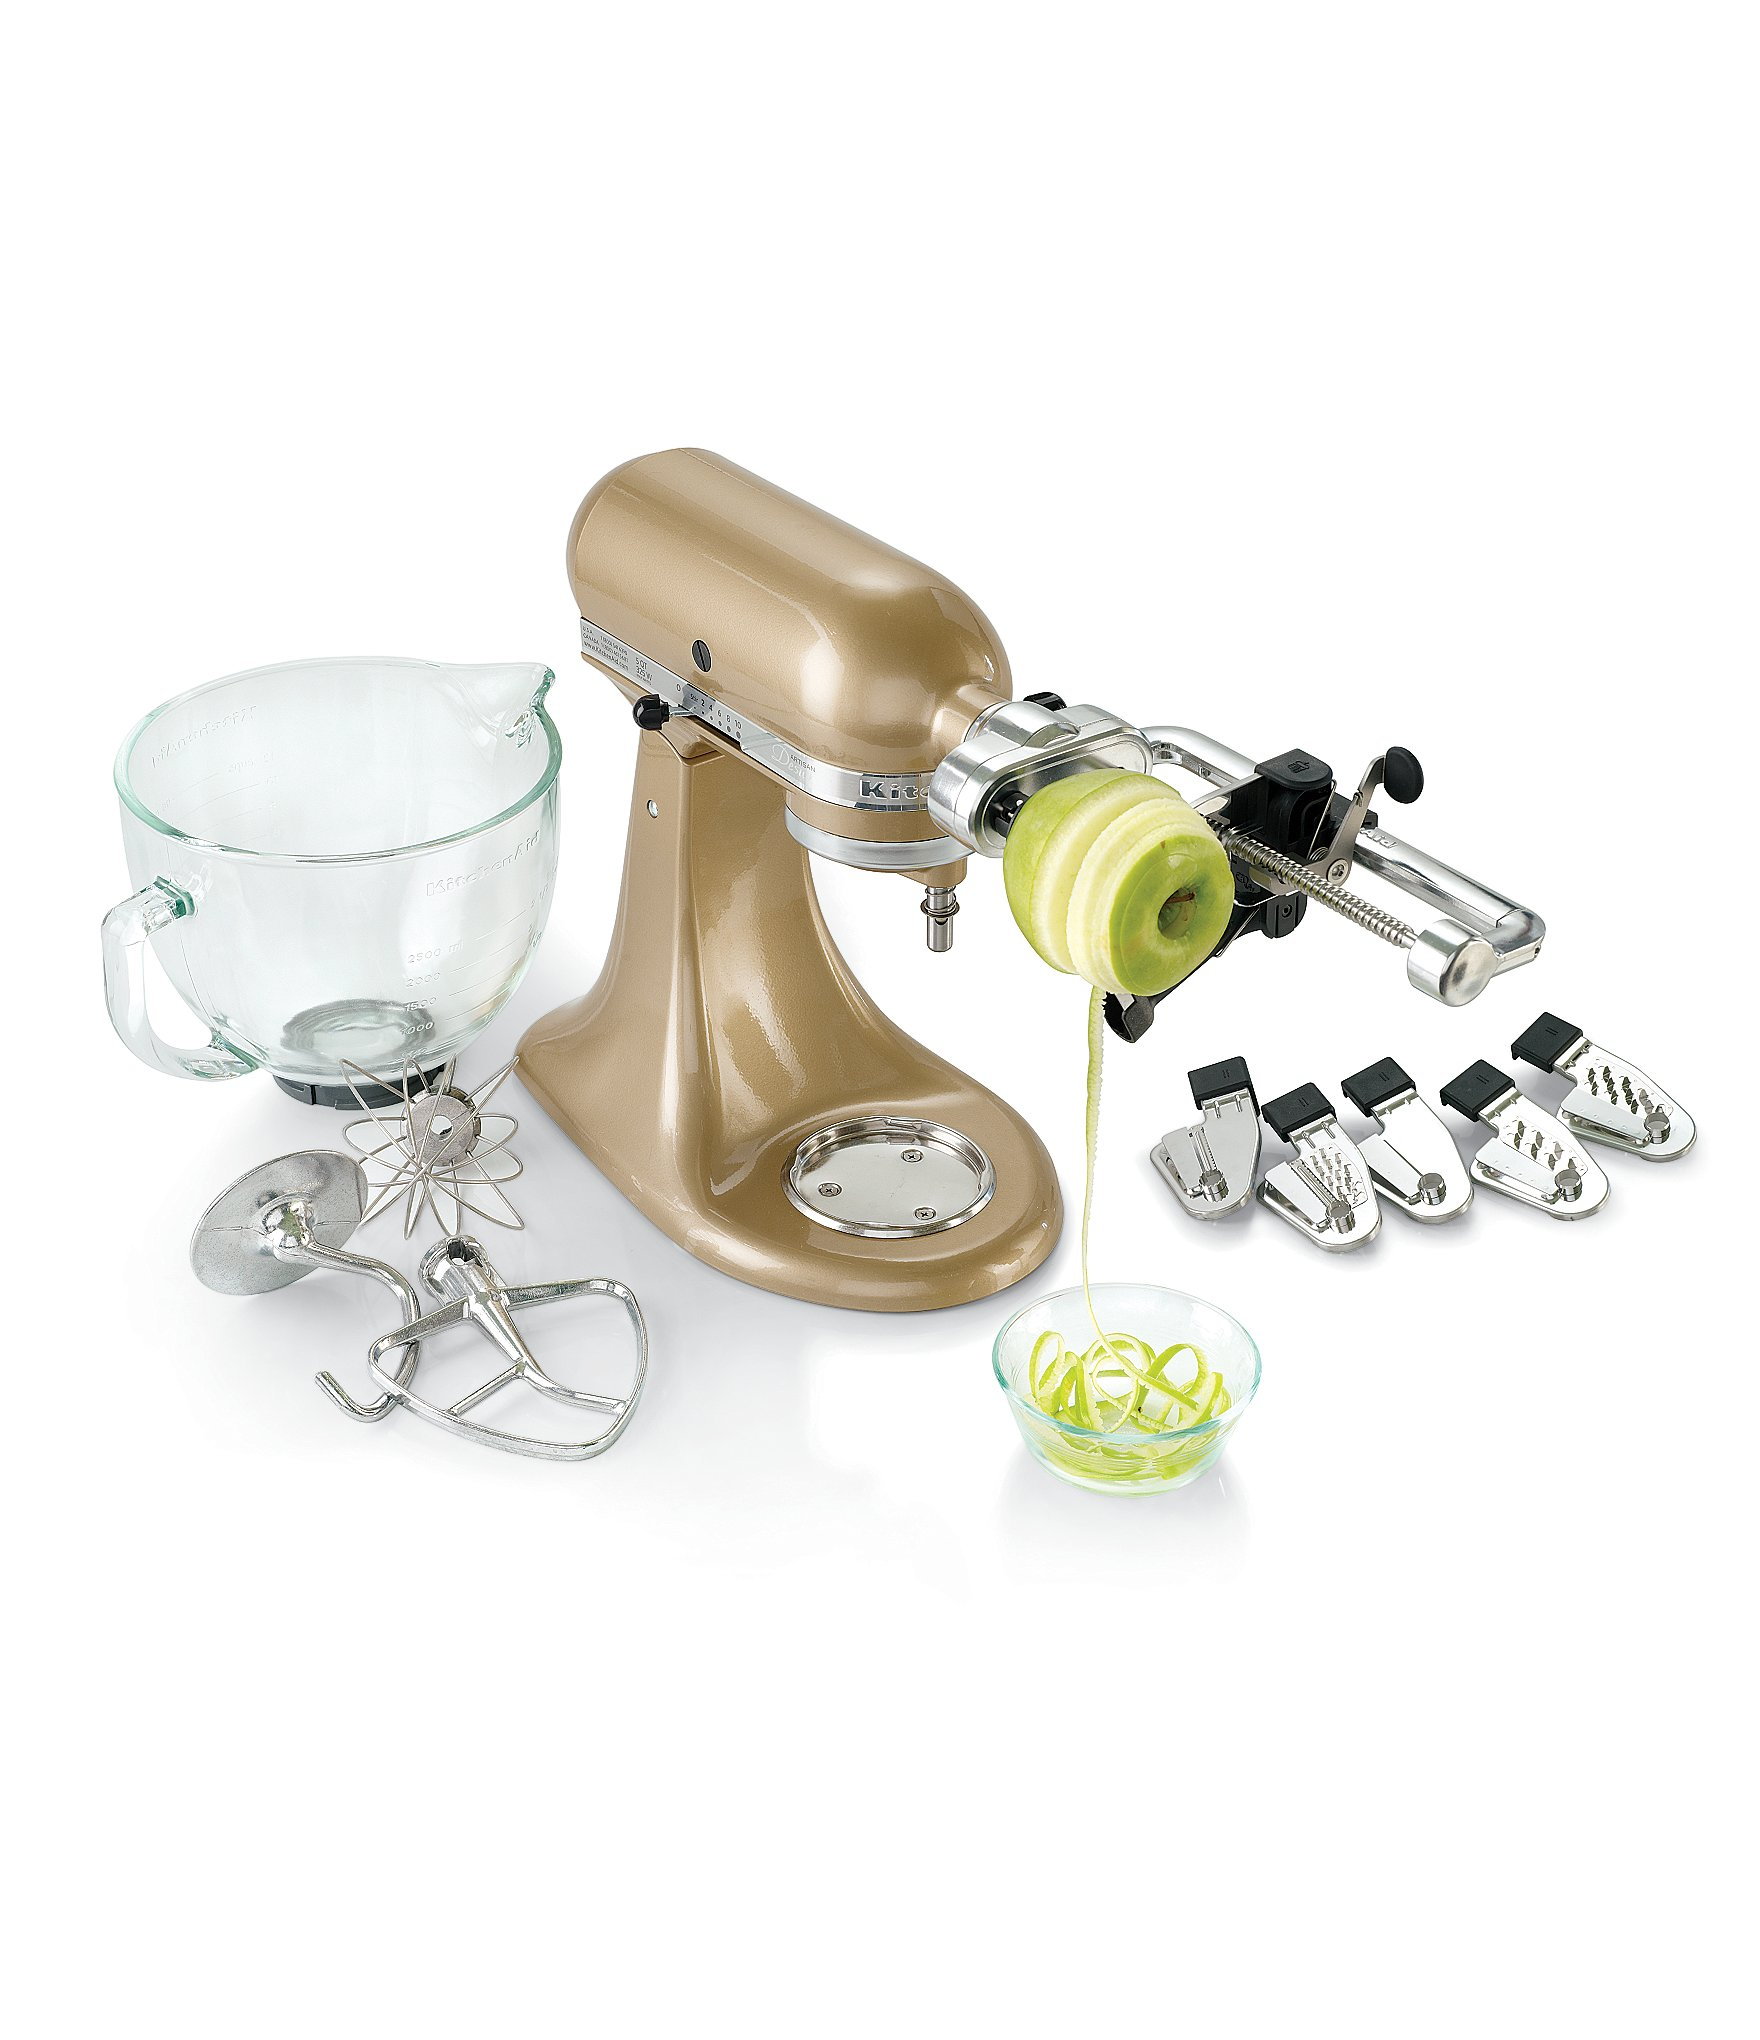 Kitchenaid Attachments Spiralizer Kitchenaid Spiralizer Plus With Peel Core And Slice Stand Mixer